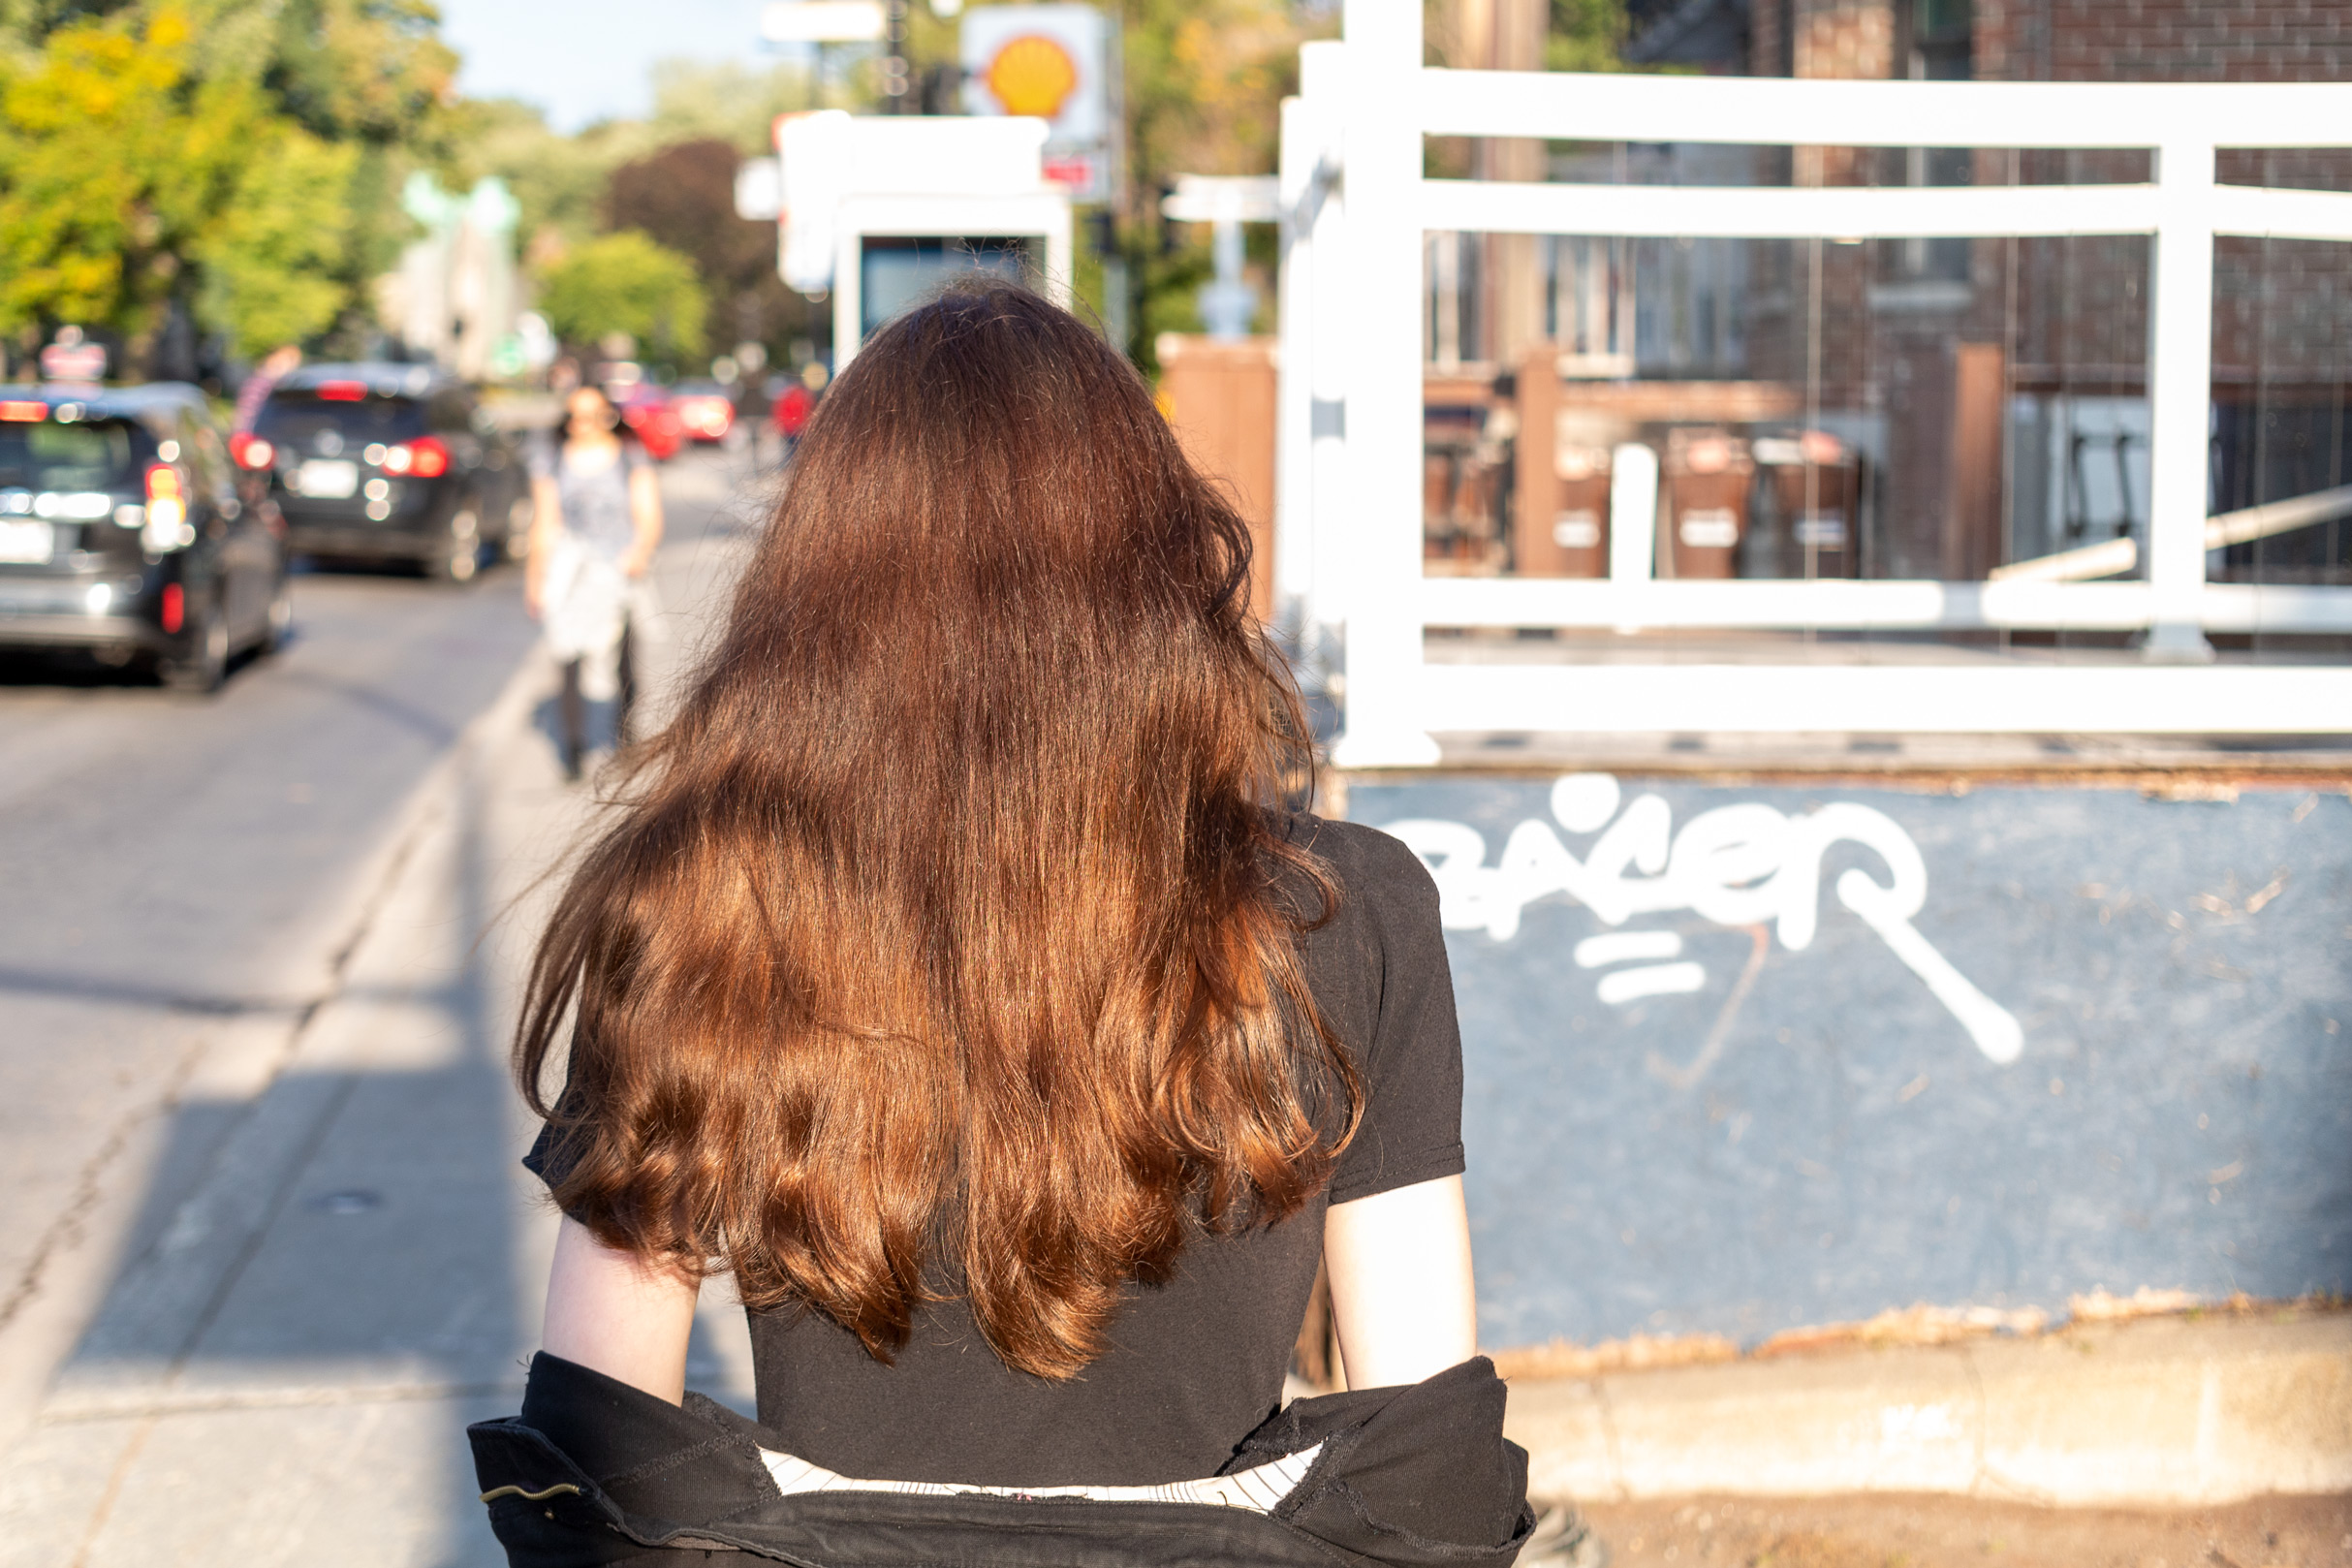 Woman with long brown hair reflecting the sunlight walking down a street